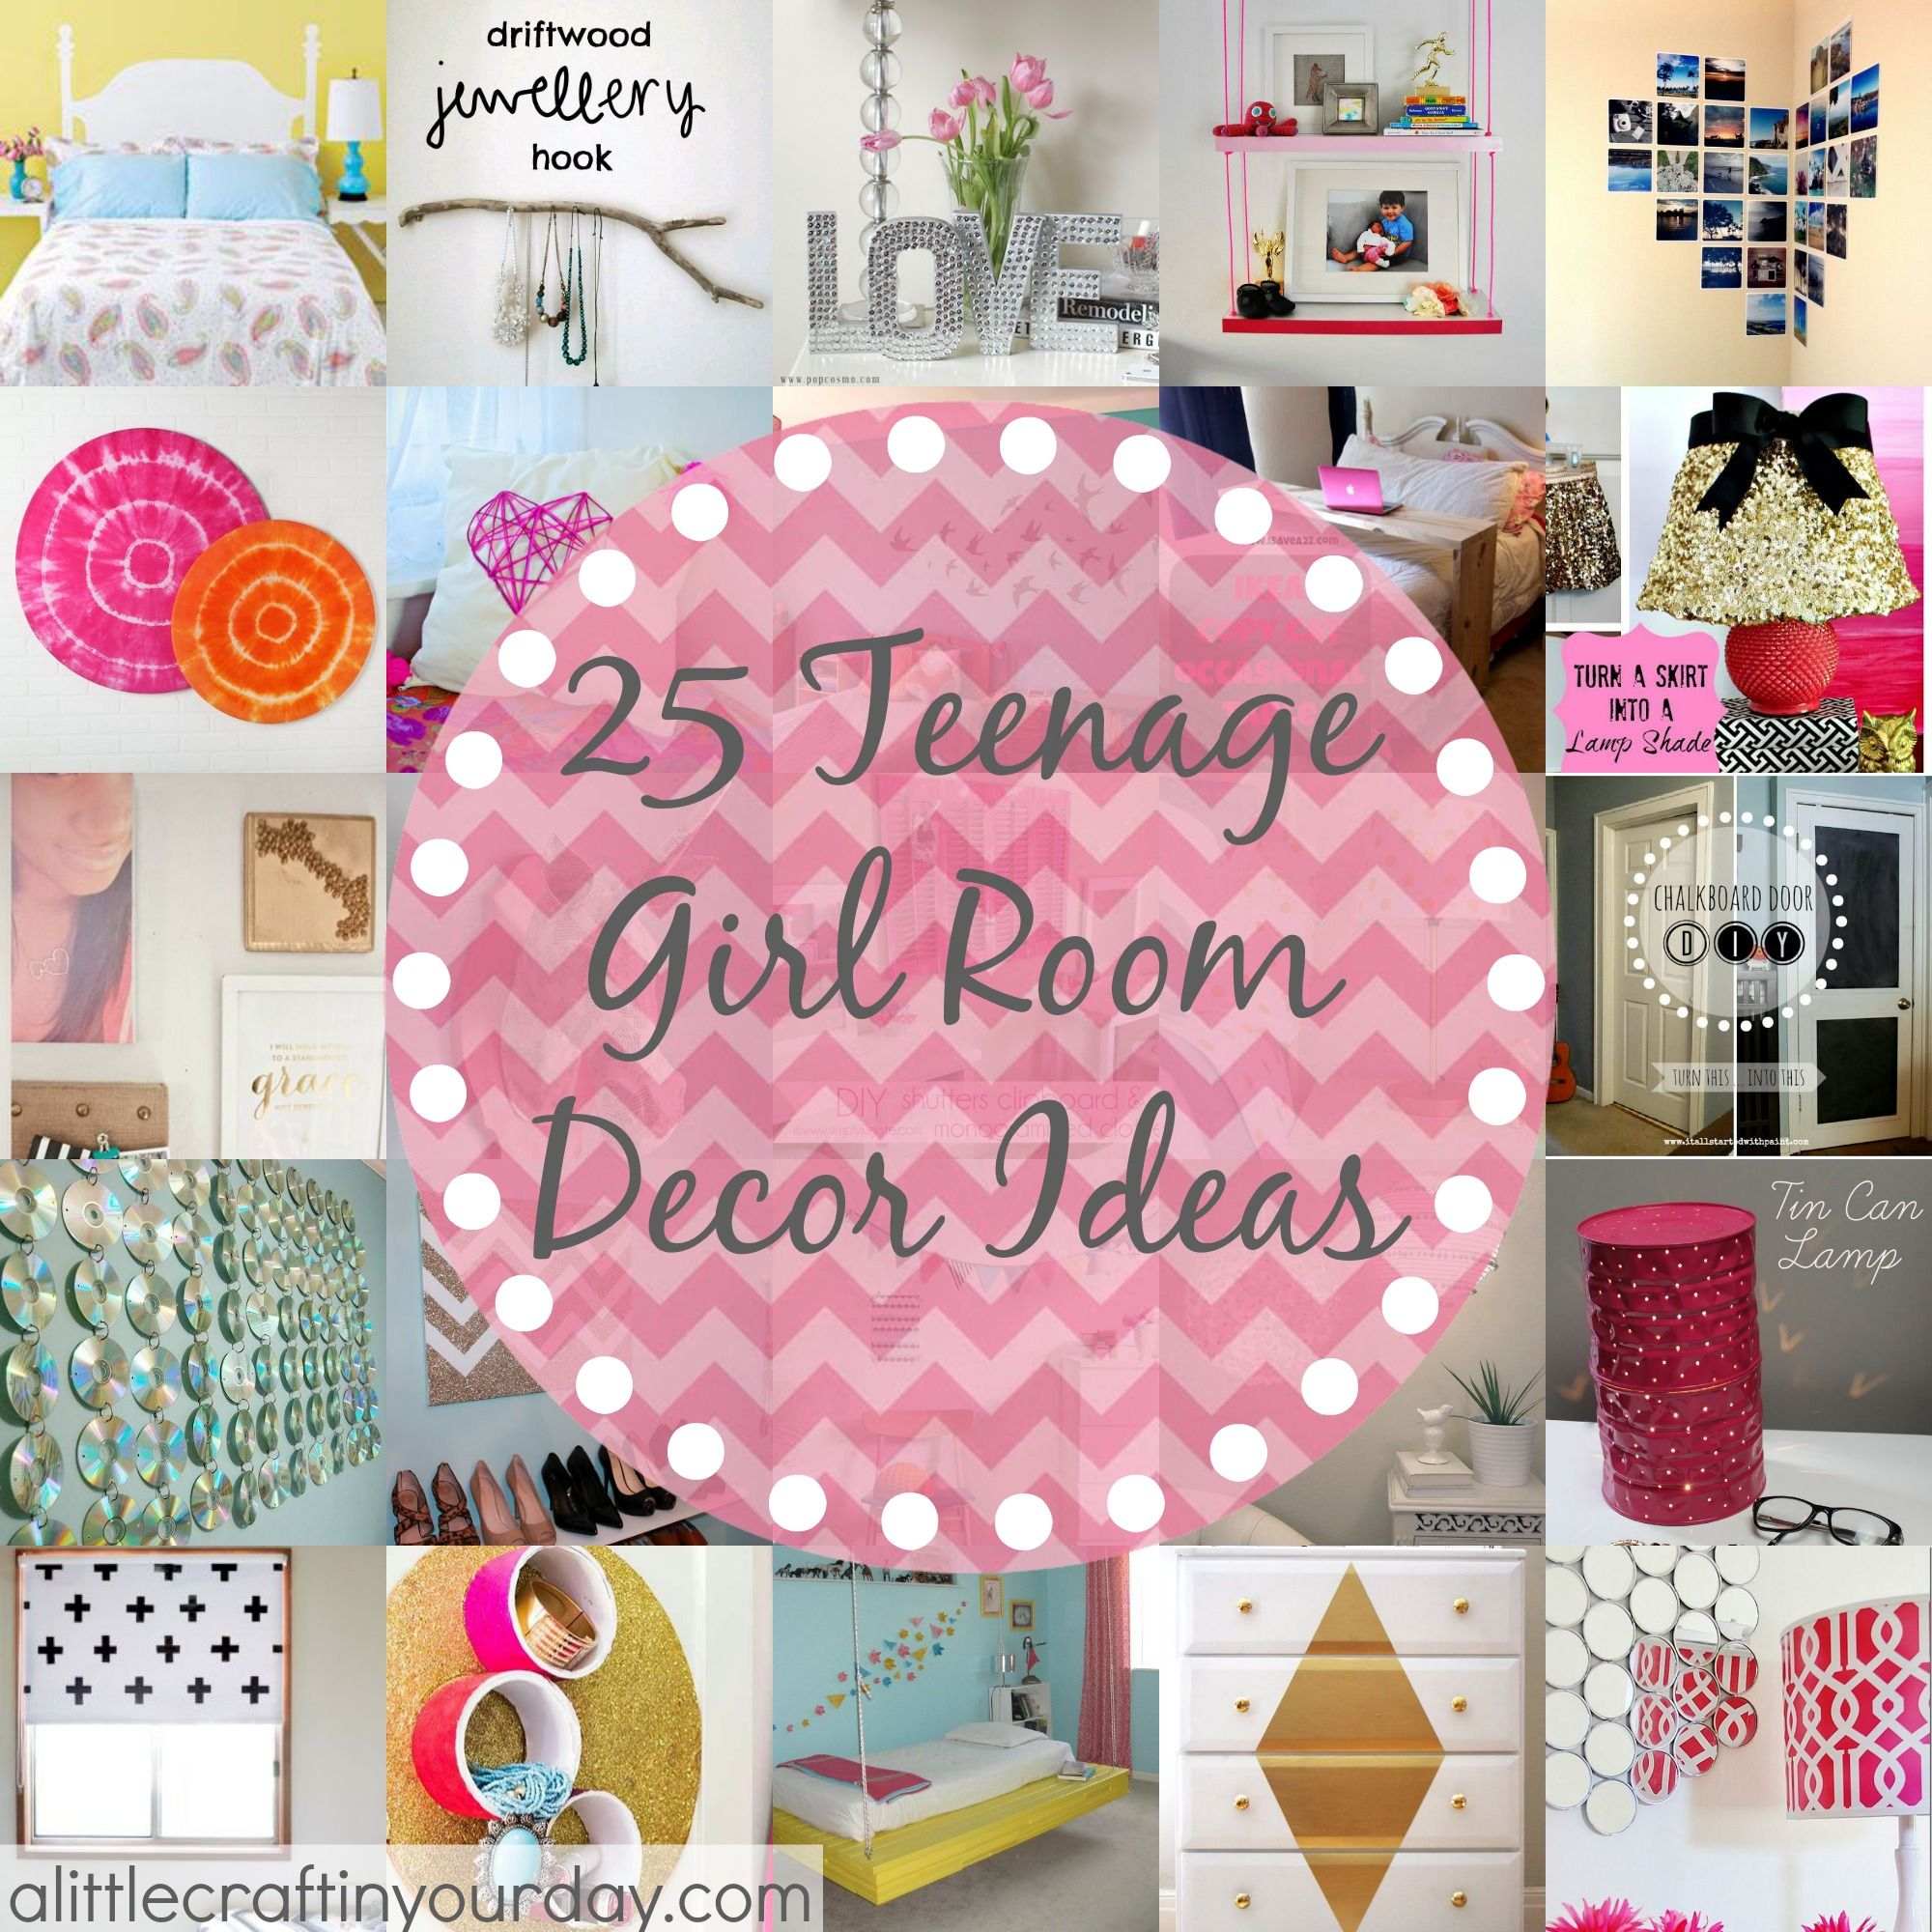 Teen bedroom diy decorating ideas - 25 More Teenage Girl Room Decor Ideas